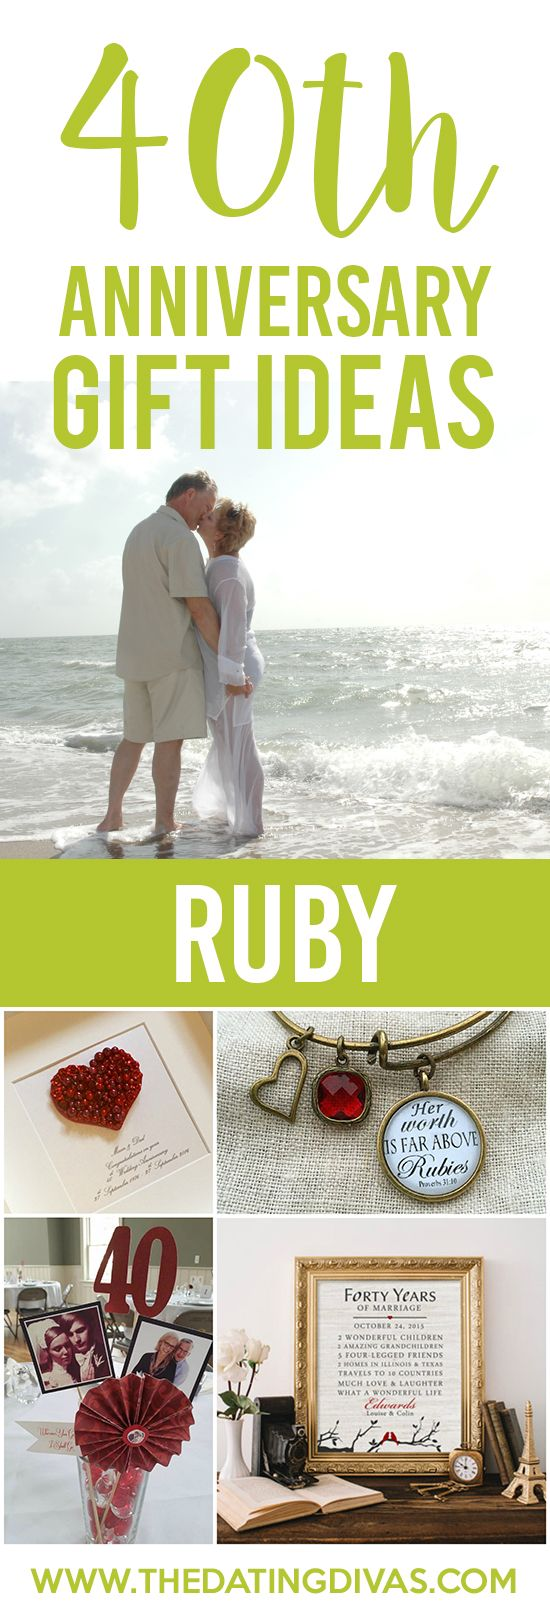 40th Anniversary Gift Ideas for your RUBY Anniversary! Sweet ideas!